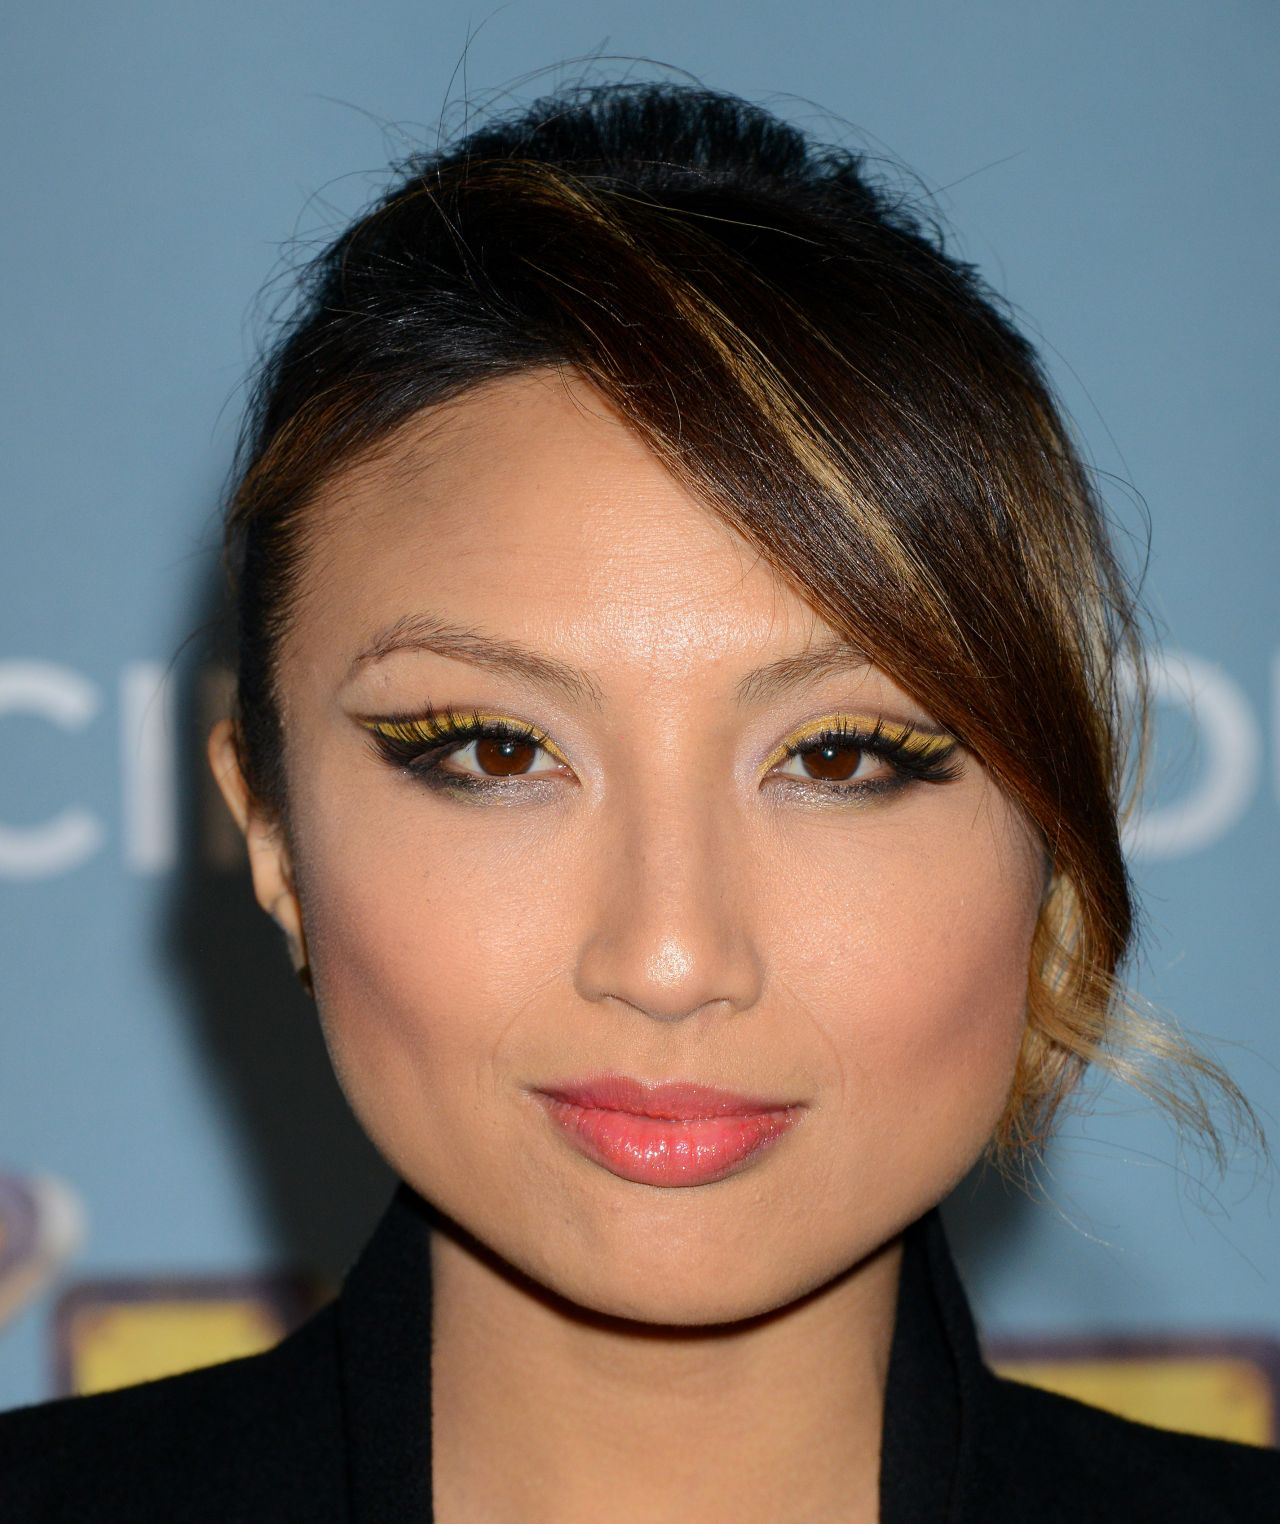 jeannie mai disneyjeannie mai instagram, jeannie mai story, jeannie mai husband, jeannie mai oscars, jeannie mai eyebrows, jeannie mai, jeannie mai tattoos, jeannie mai the real, jeannie mai how do i look, jeannie mai net worth, jeannie mai married, jeannie mai bio, jeannie mai feet, jeannie mai and brenda song, jeannie mai freddy harteis, jeannie mai twitter, jeannie mai mom, jeannie mai disney, jeannie mai measurements, jeannie mai website